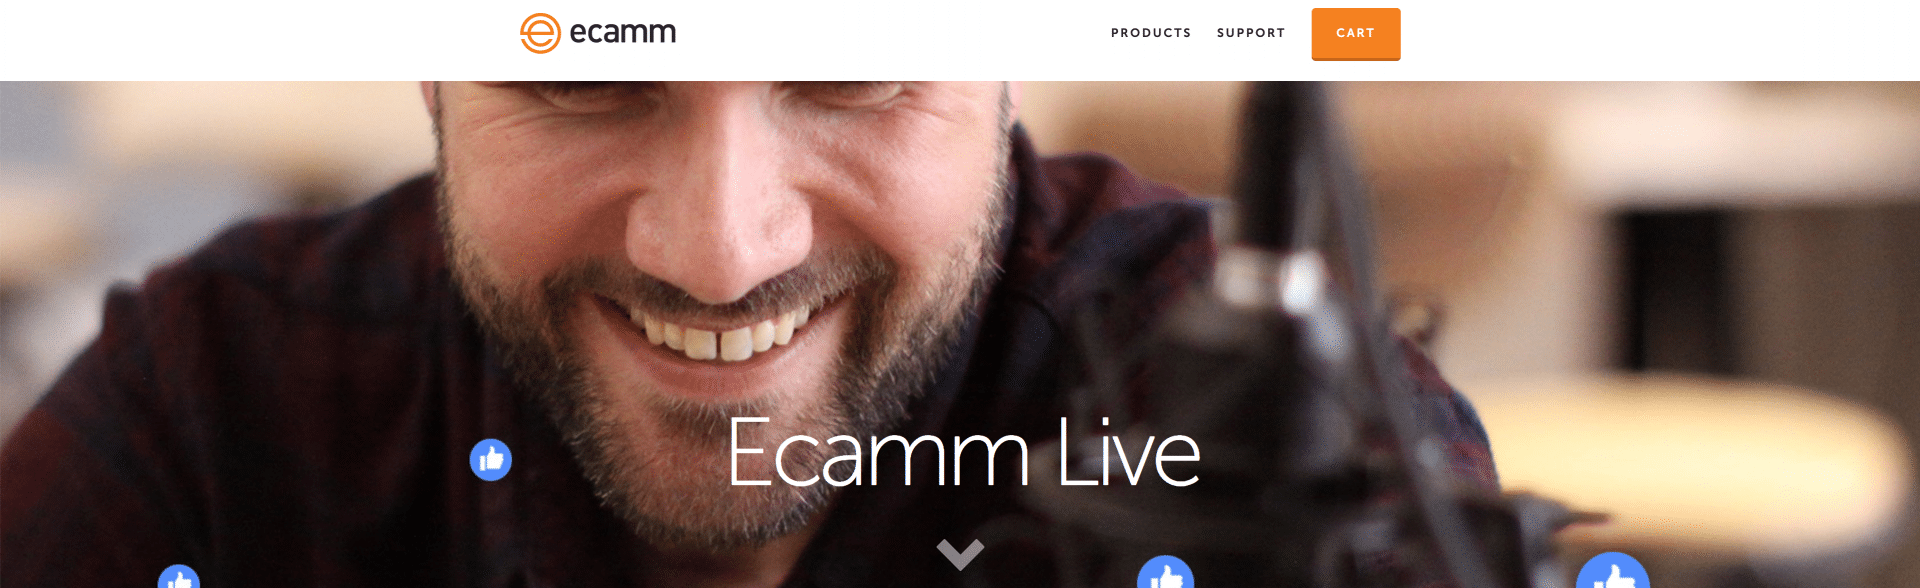 ecammlive screenshot